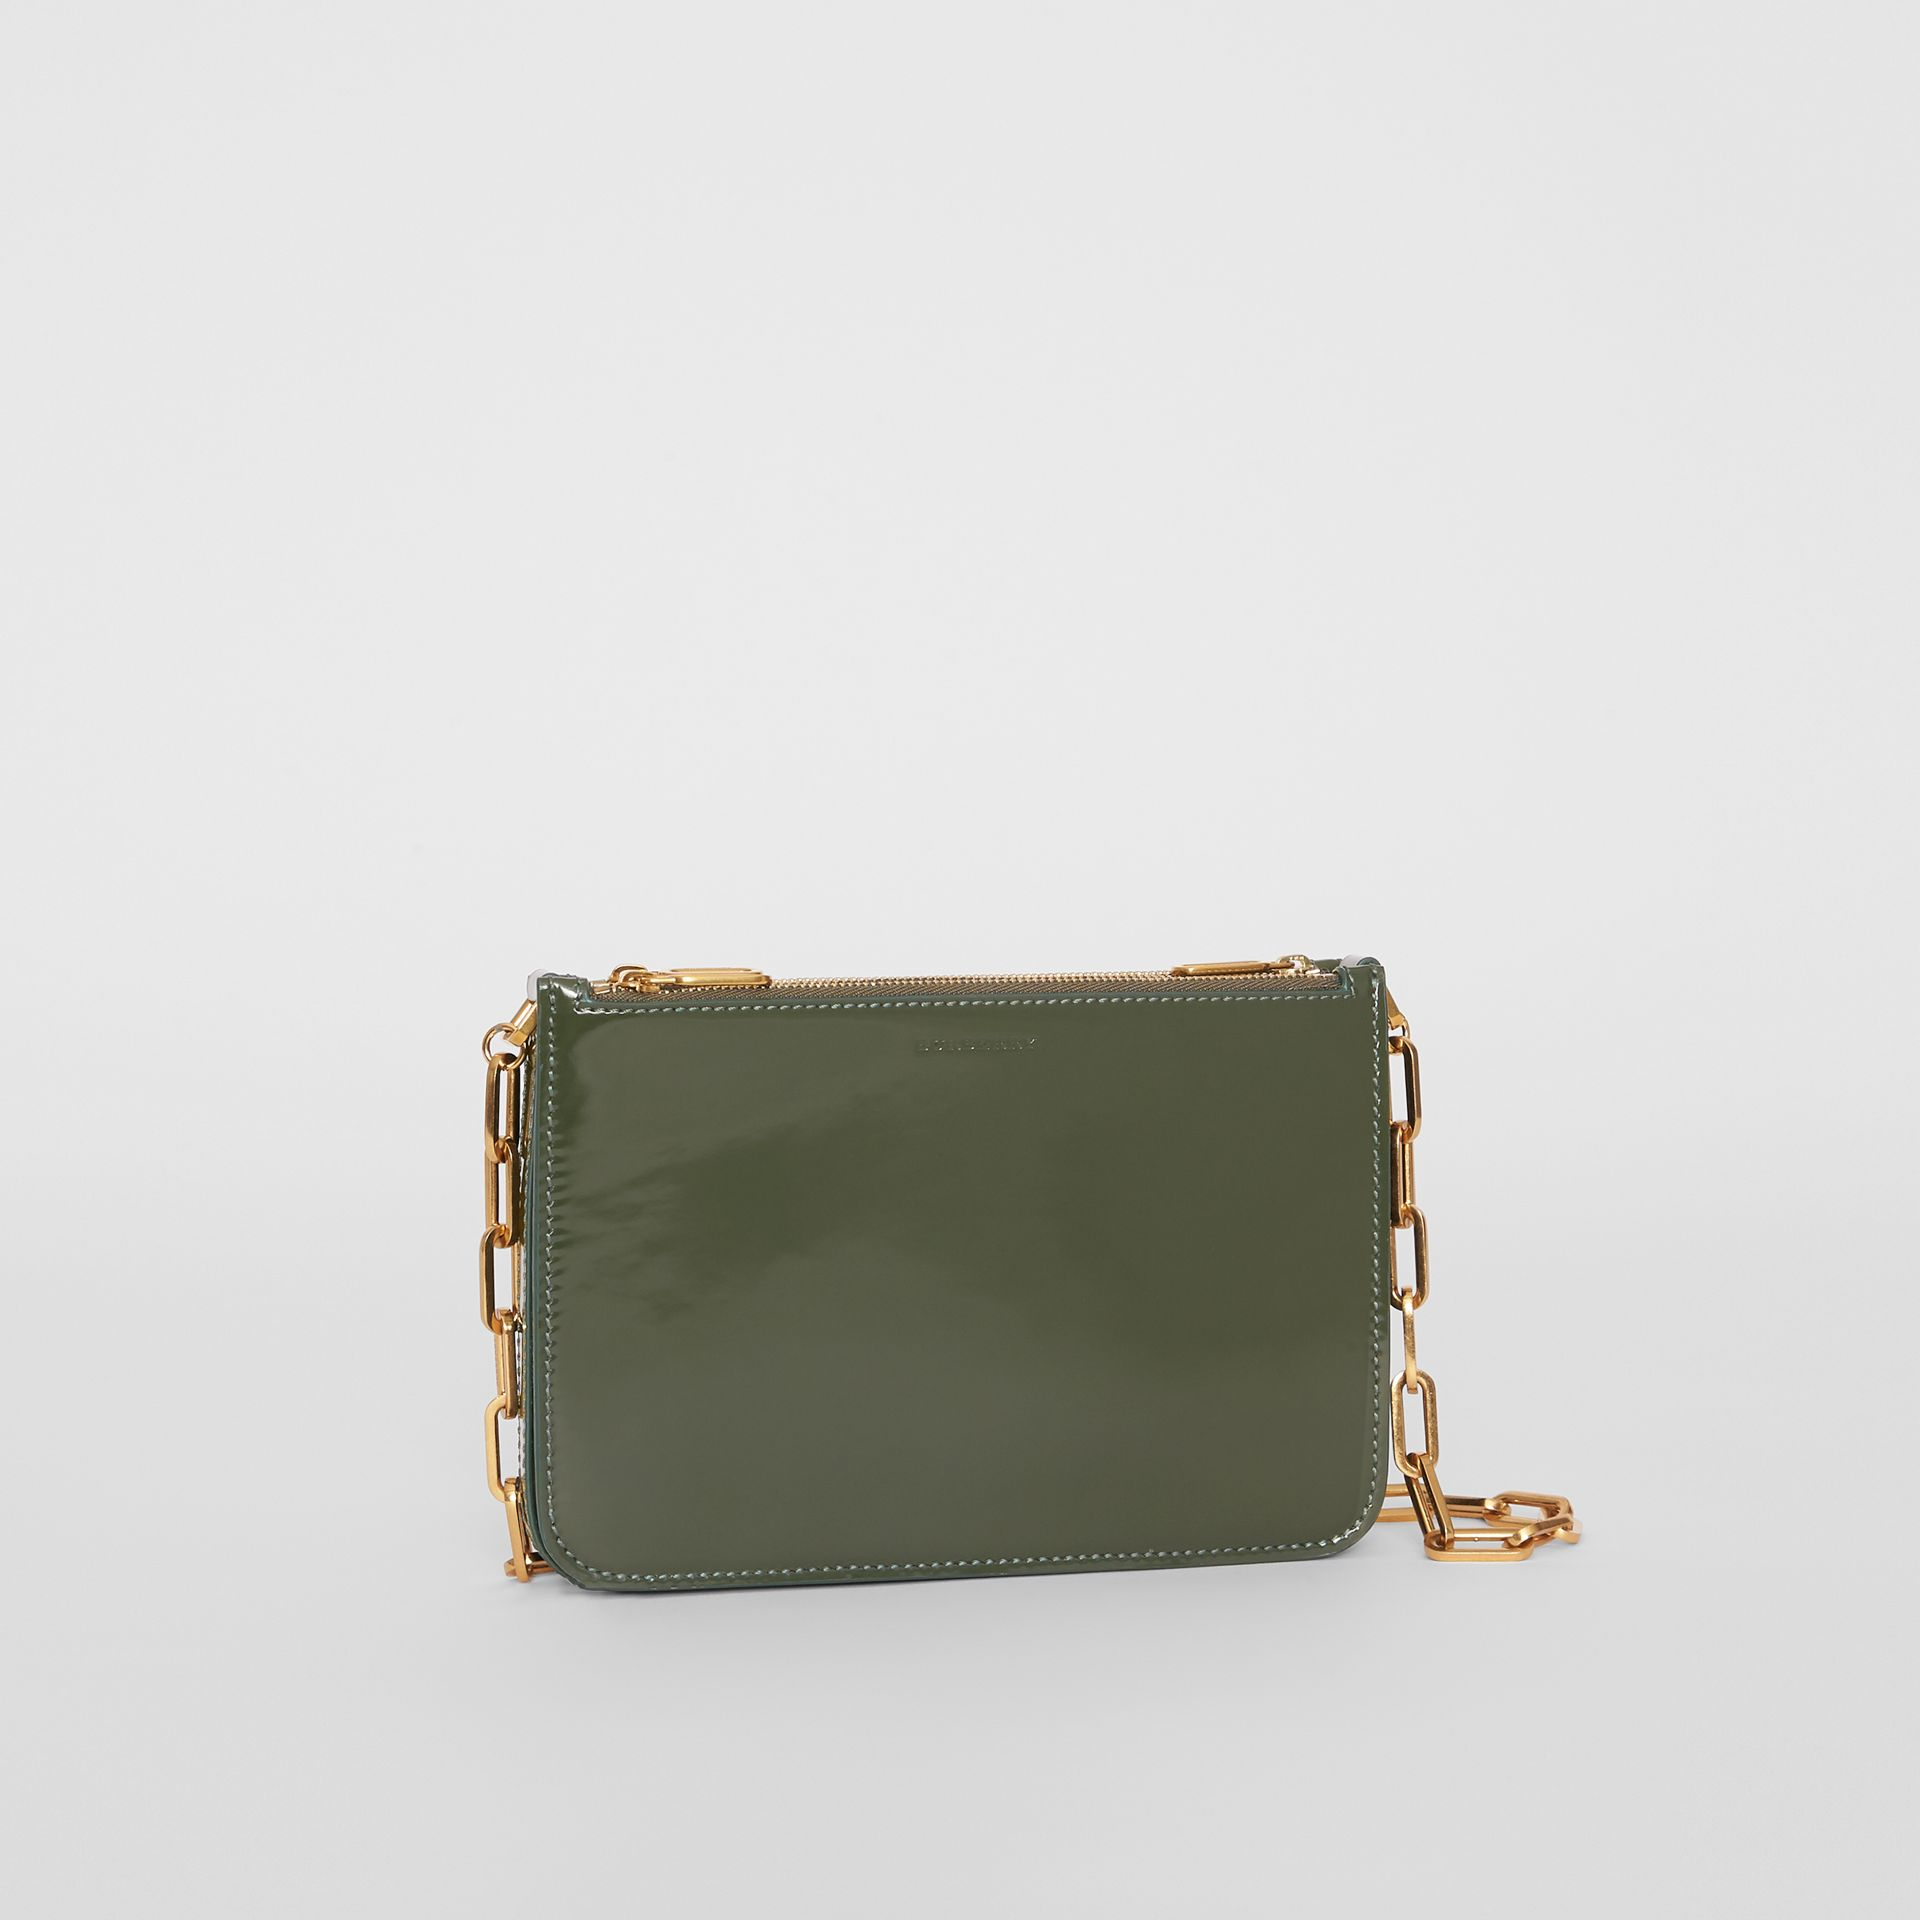 Triple Zip Patent Leather Crossbody Bag in Dark Forest Green - Women | Burberry United States - gallery image 4